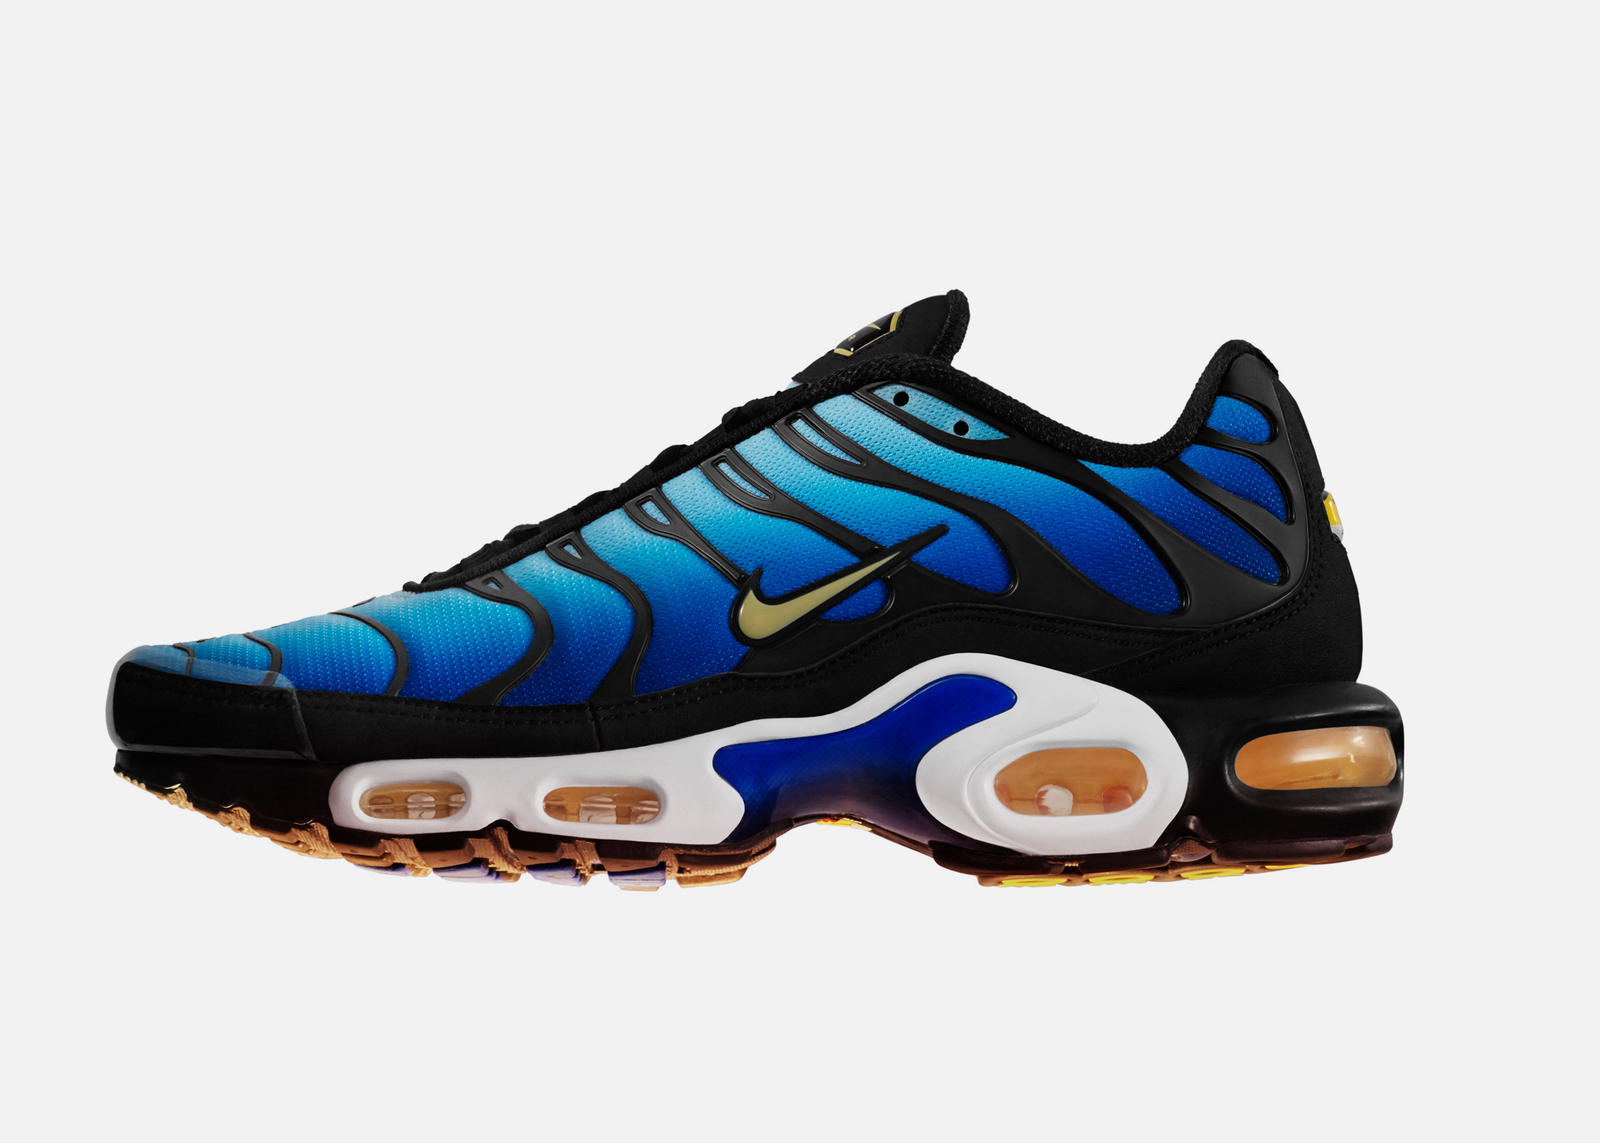 online retailer 1cd39 437b5 The Untold Story of the Nike Air Max Plus 20